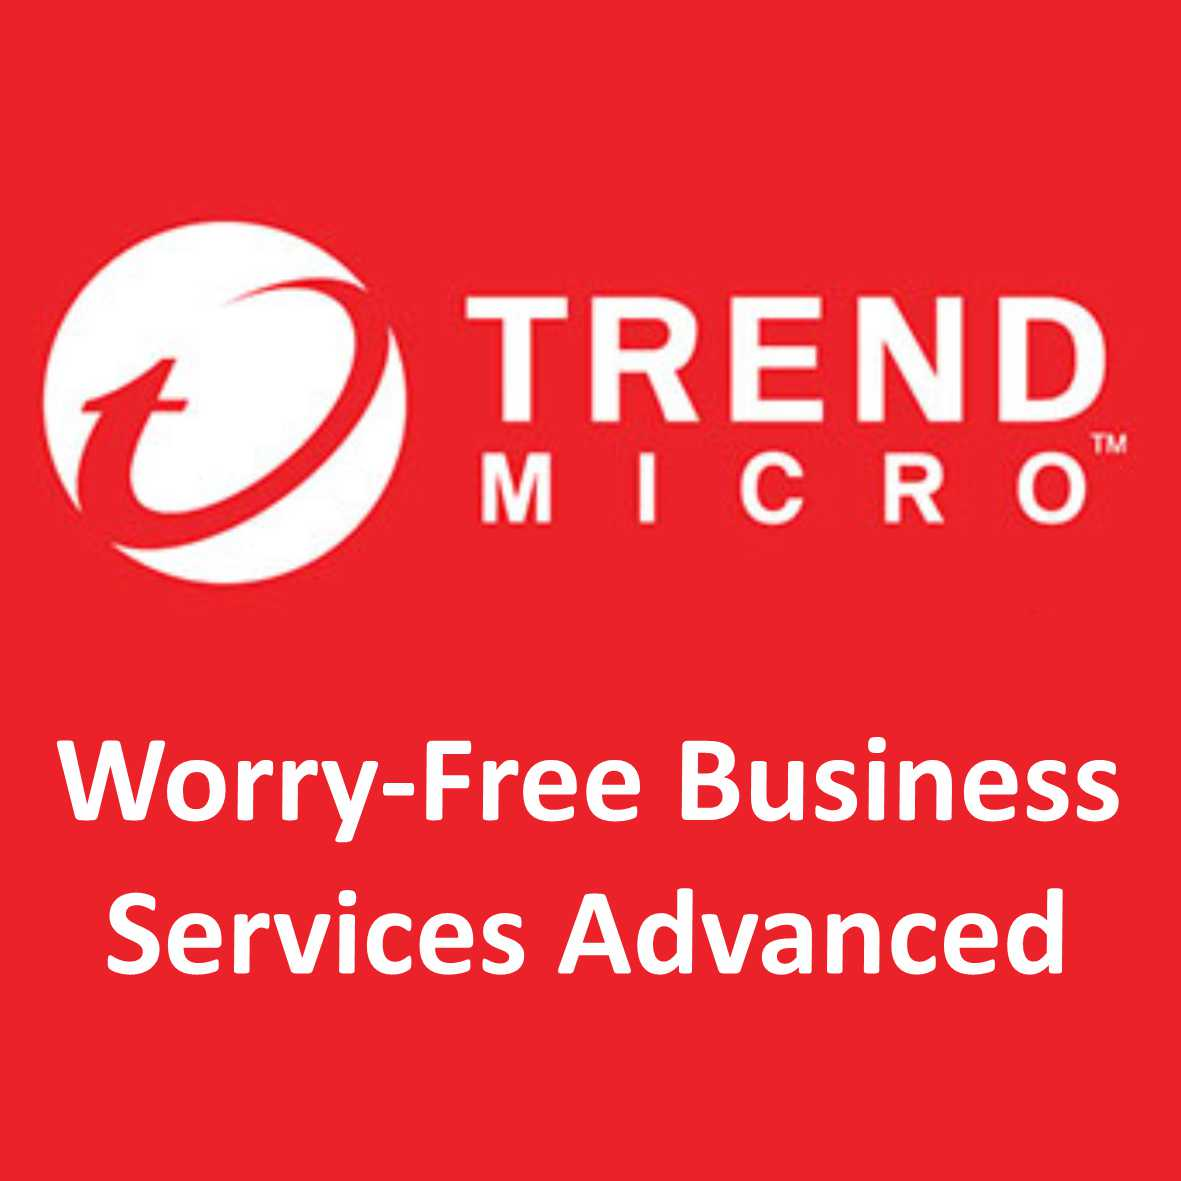 Worry-Free Business Services Advanced